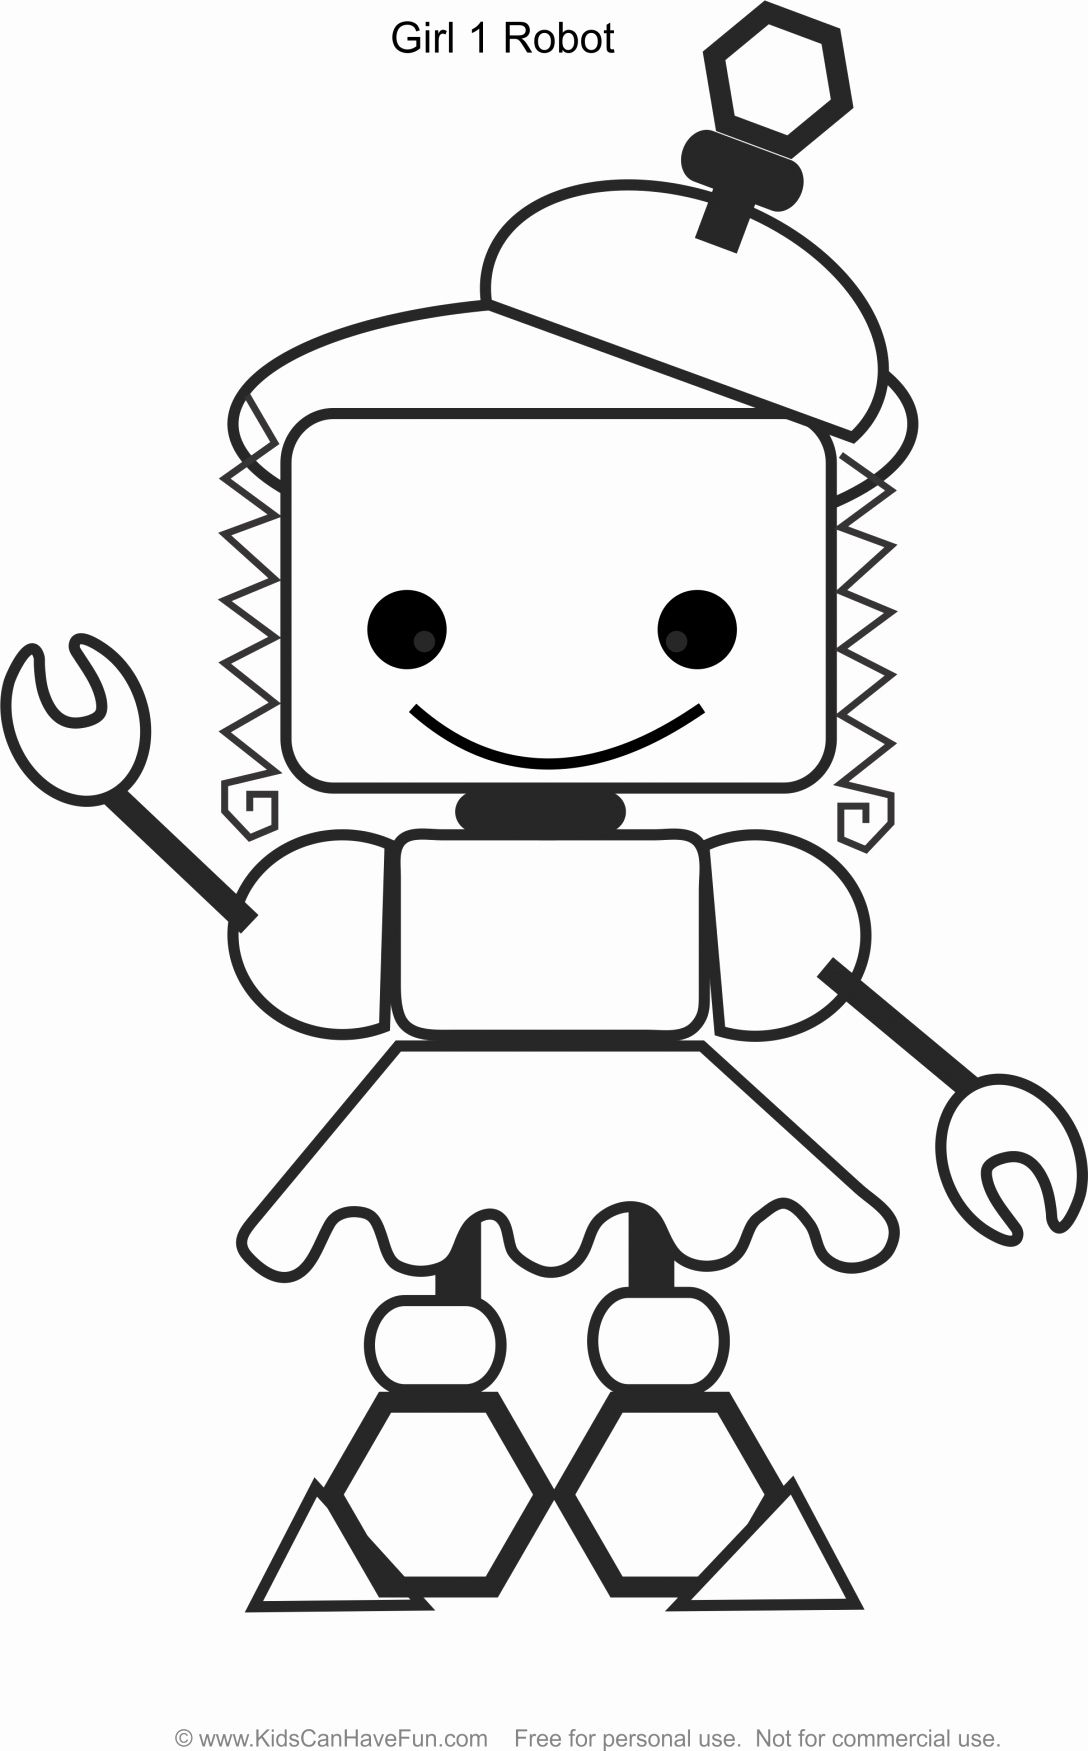 Barn Animal Coloring Pages New Robot Coloring Pages For Toddlers Adults Owls In Th In 2020 Valentines Day Coloring Page Coloring Pages For Kids Valentines Day Coloring